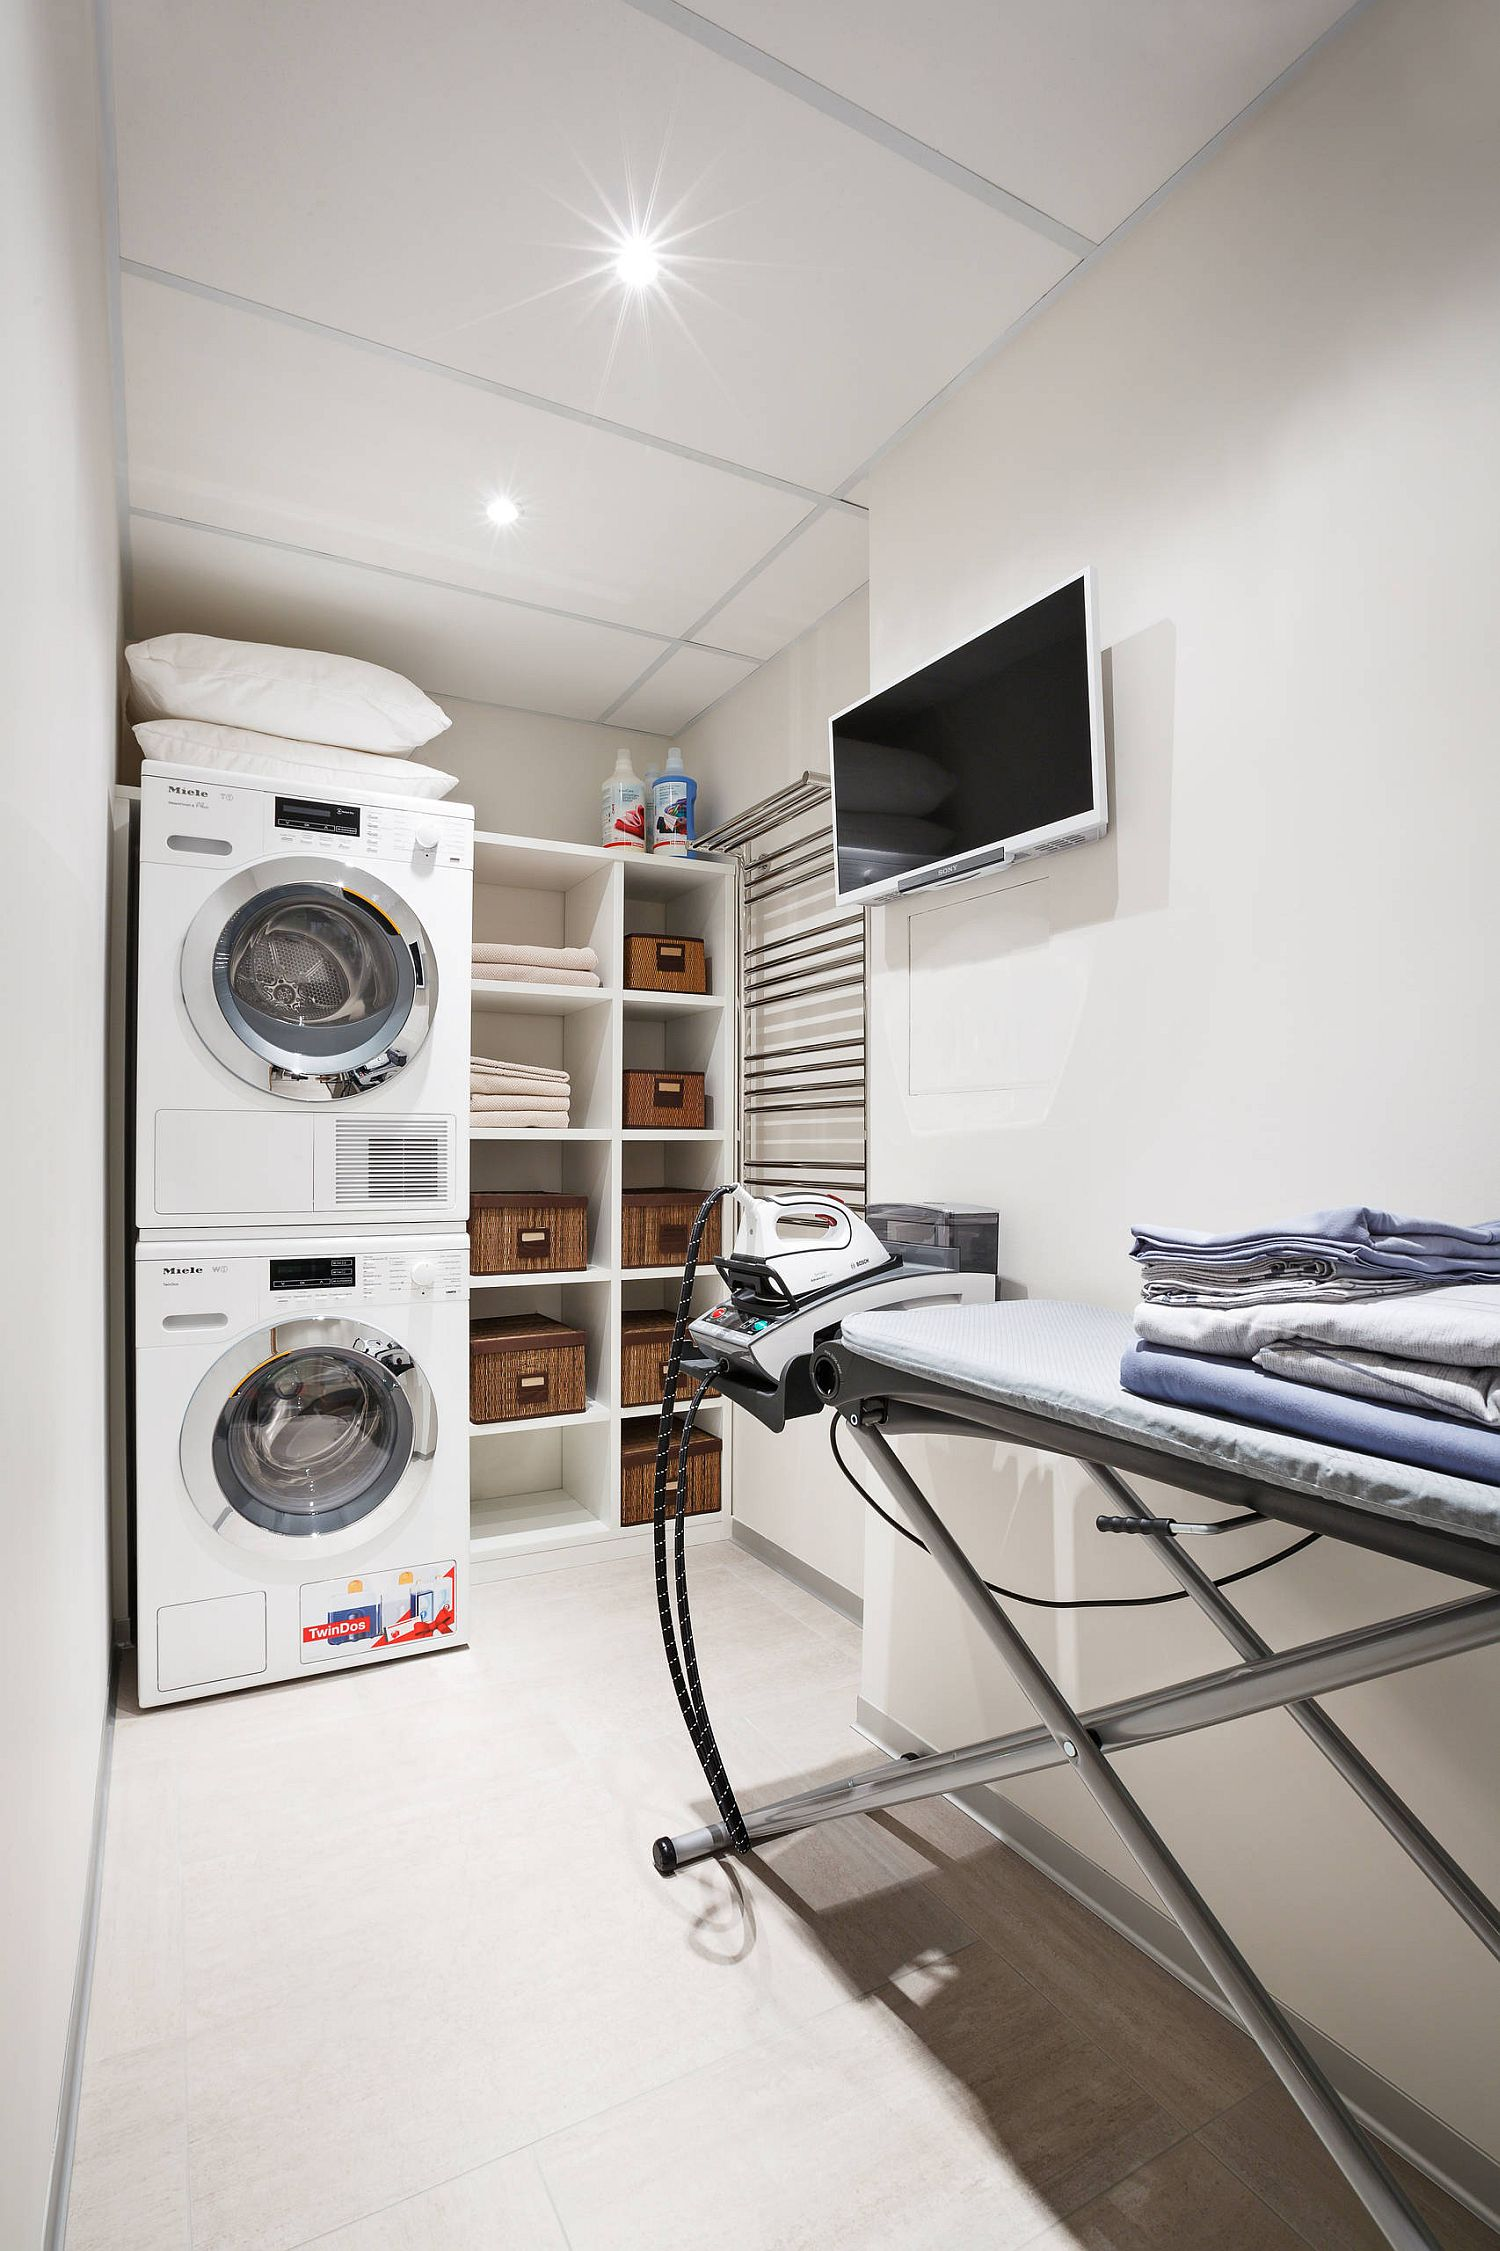 laundry room featuring television above ironing area